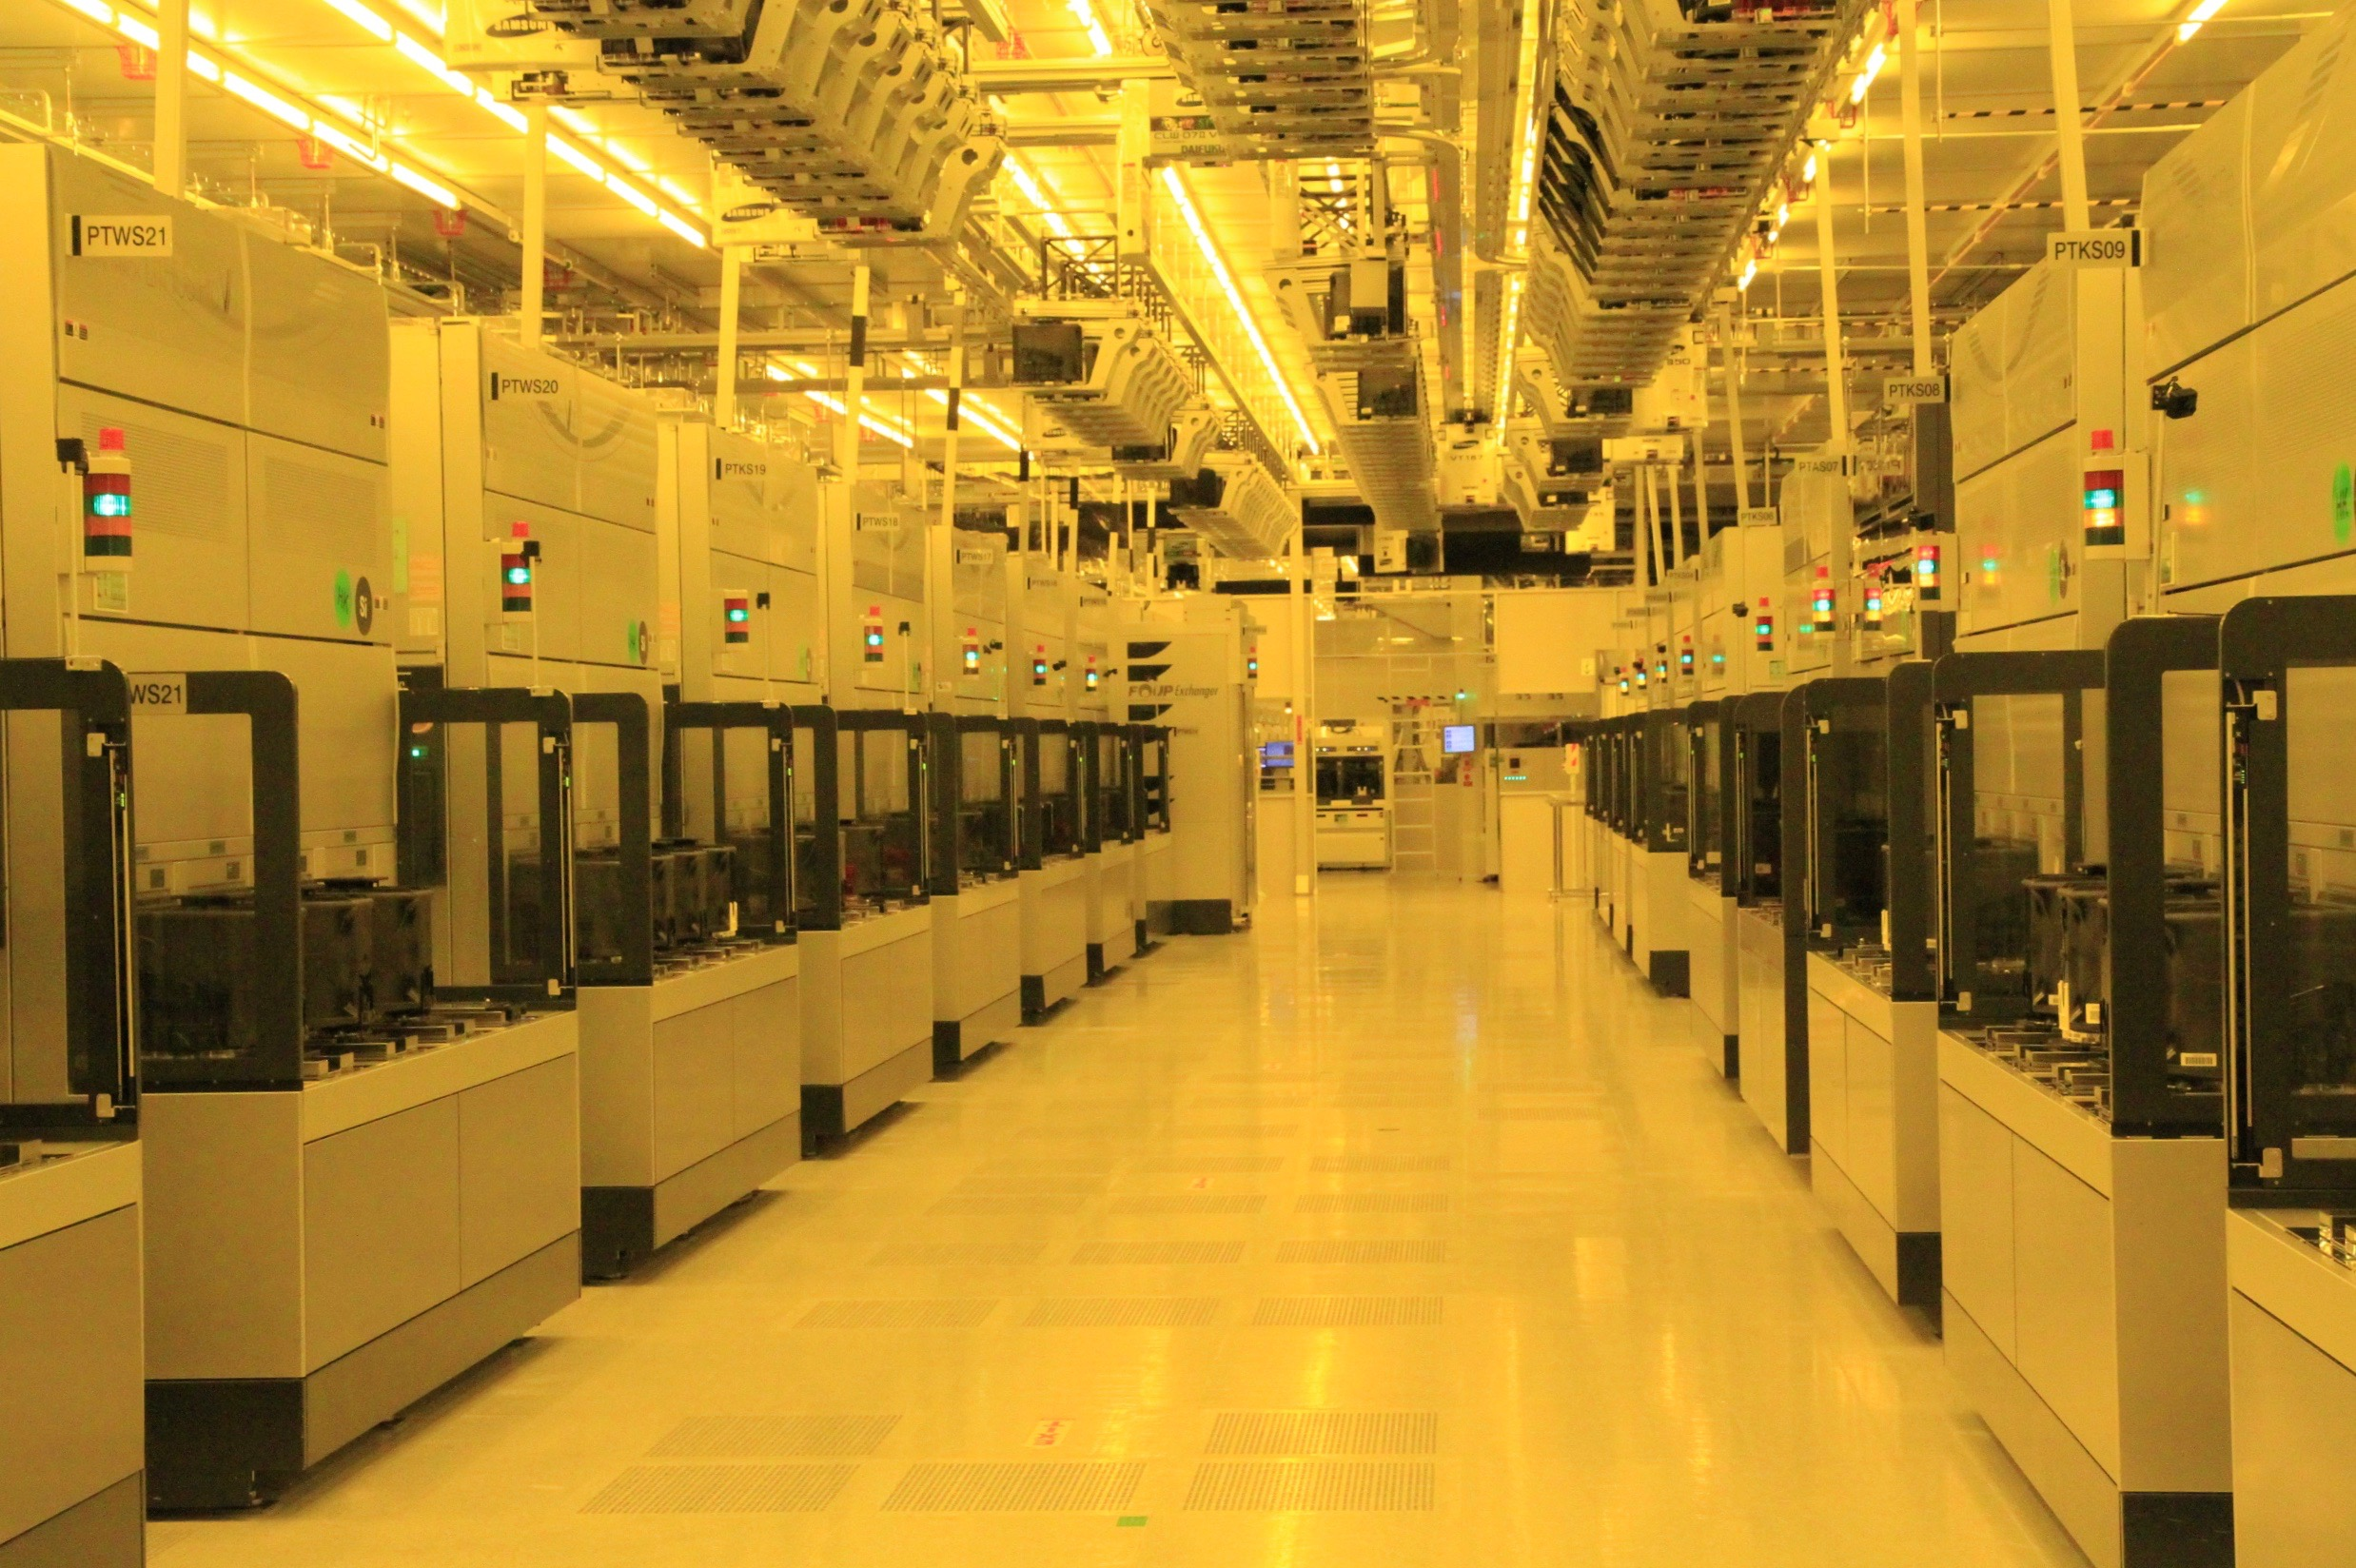 America's first manufacturing-focused 5G testbed will be located at Samsung Austin Semiconductor, featuring AT&T's 5G wireless technology with Samsung's 5G network equipment.